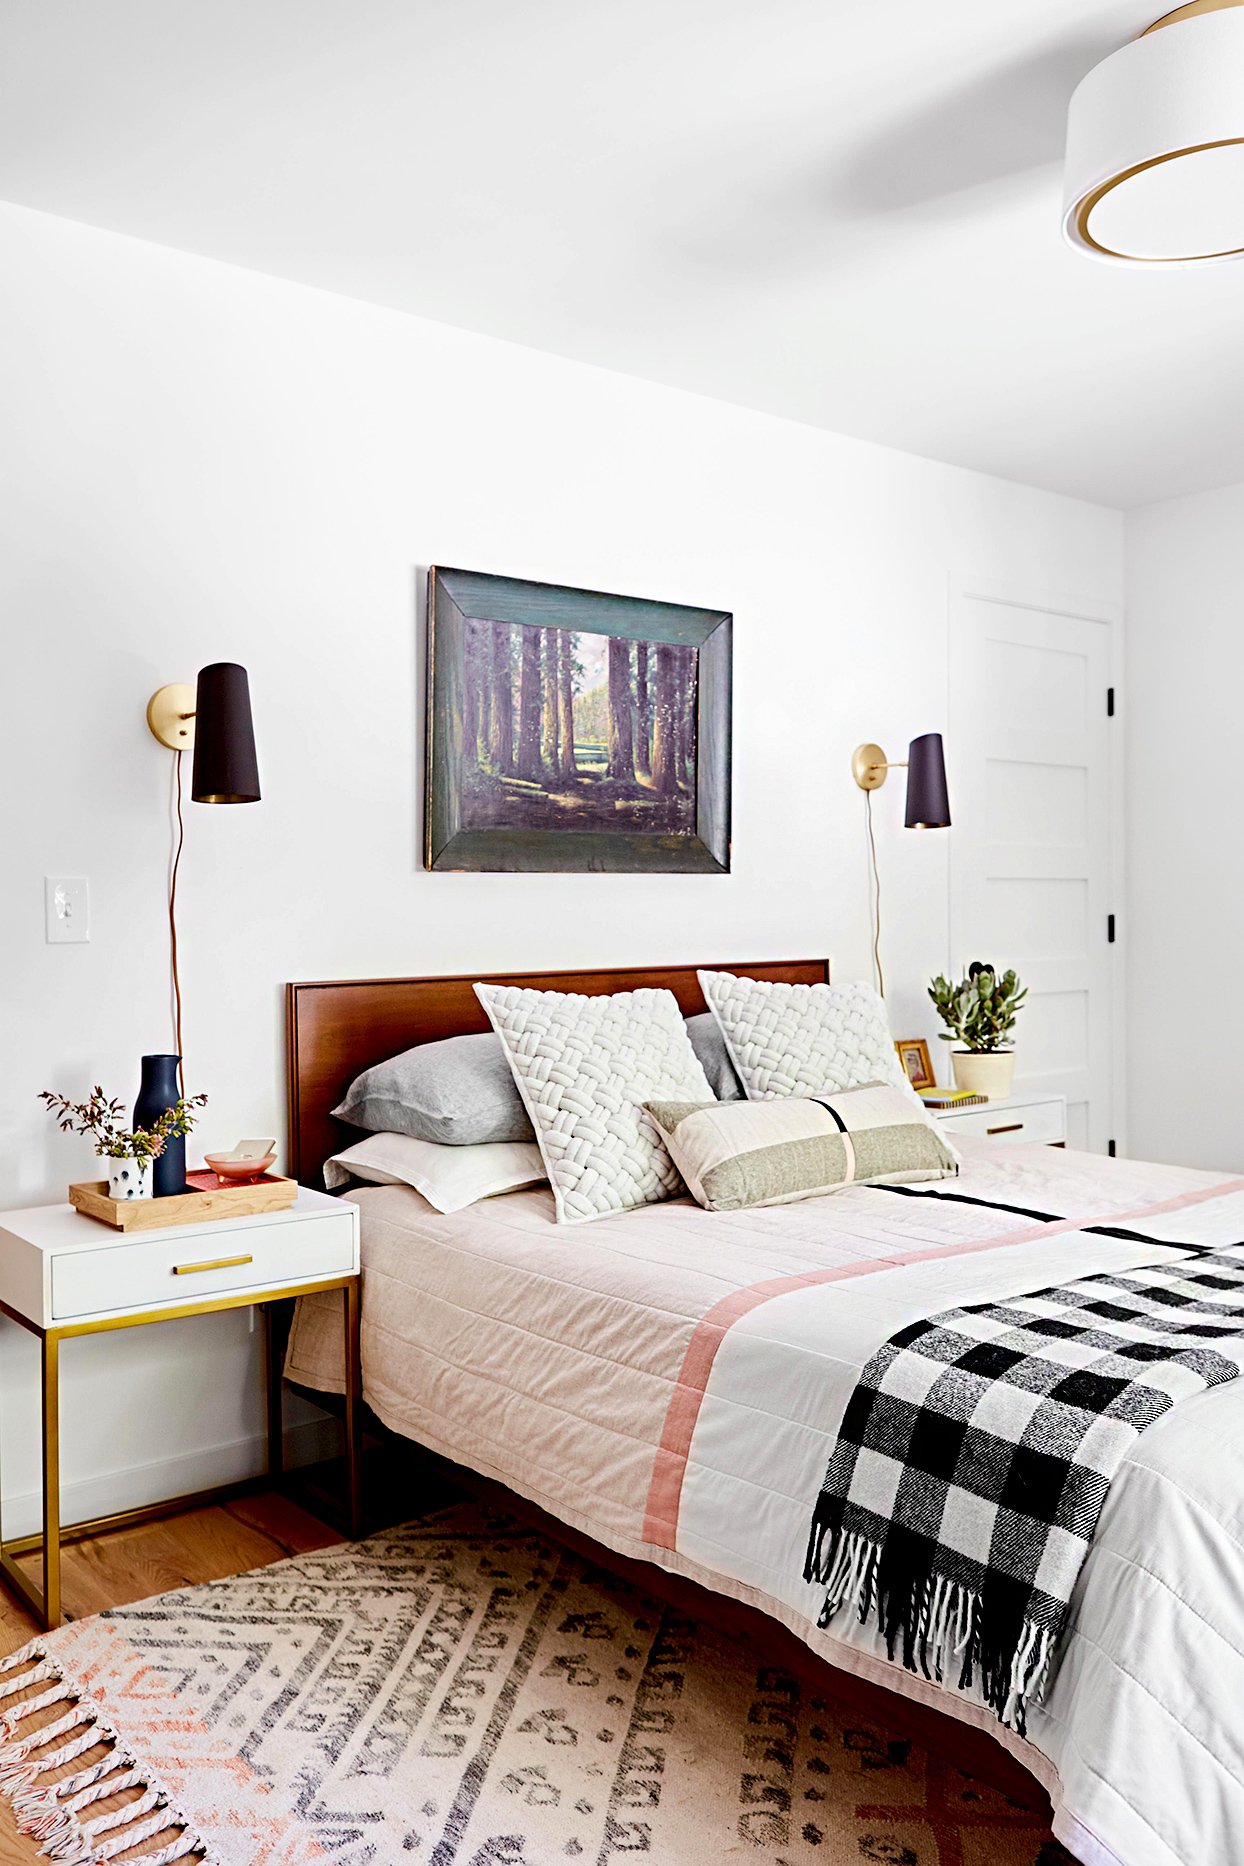 Instantly Refresh Your Bedroom with These Low-Cost Updates